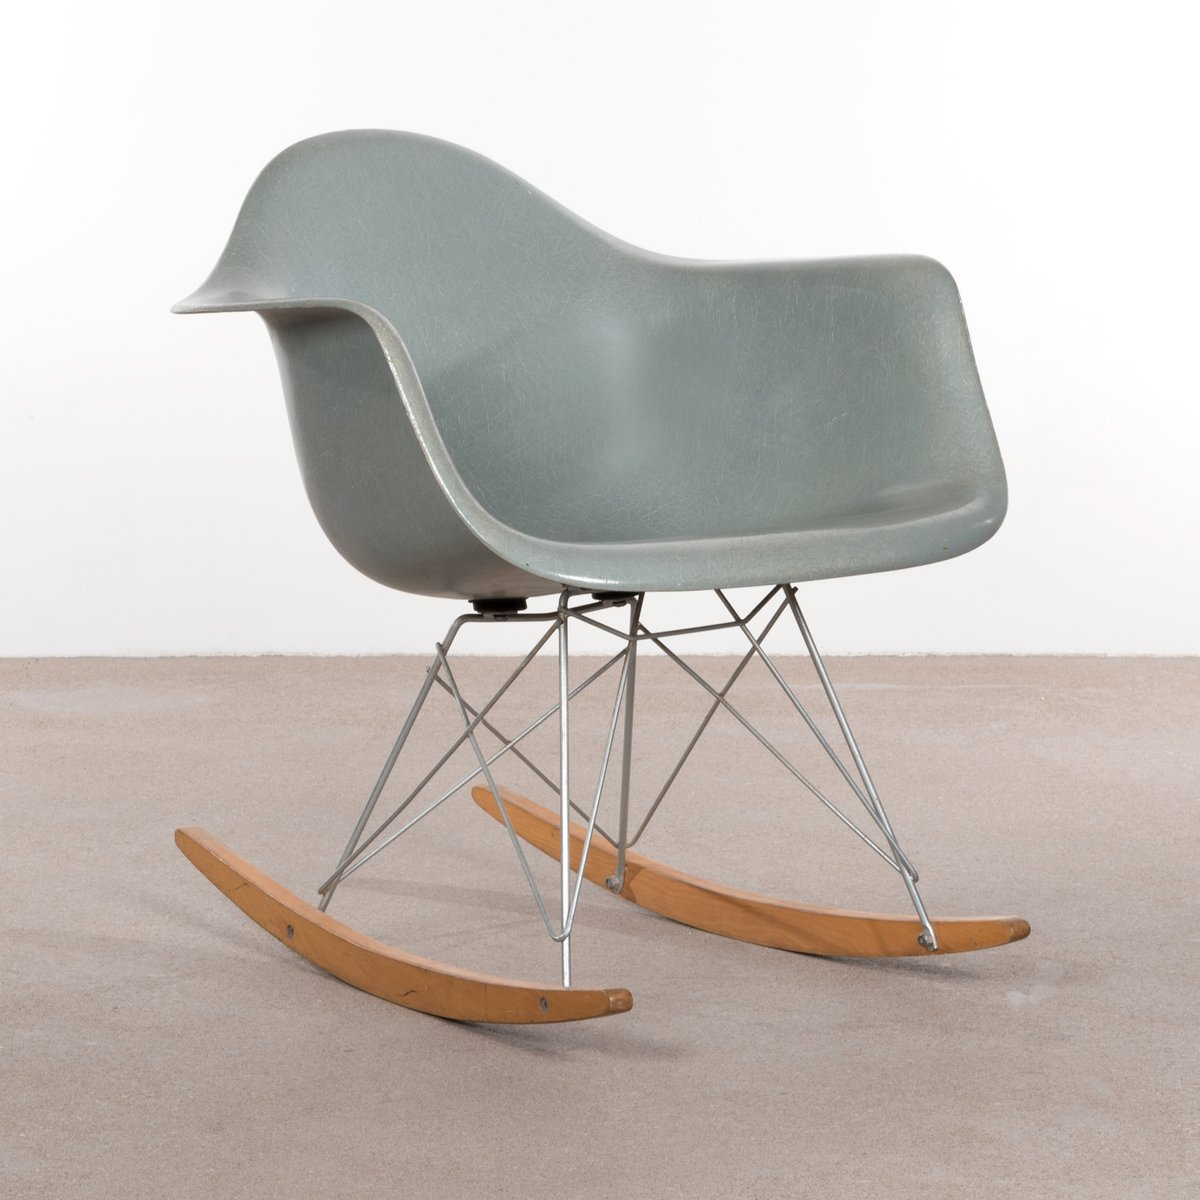 rar rocking chair by charles ray eames for herman miller 1960s for sale at pamono. Black Bedroom Furniture Sets. Home Design Ideas